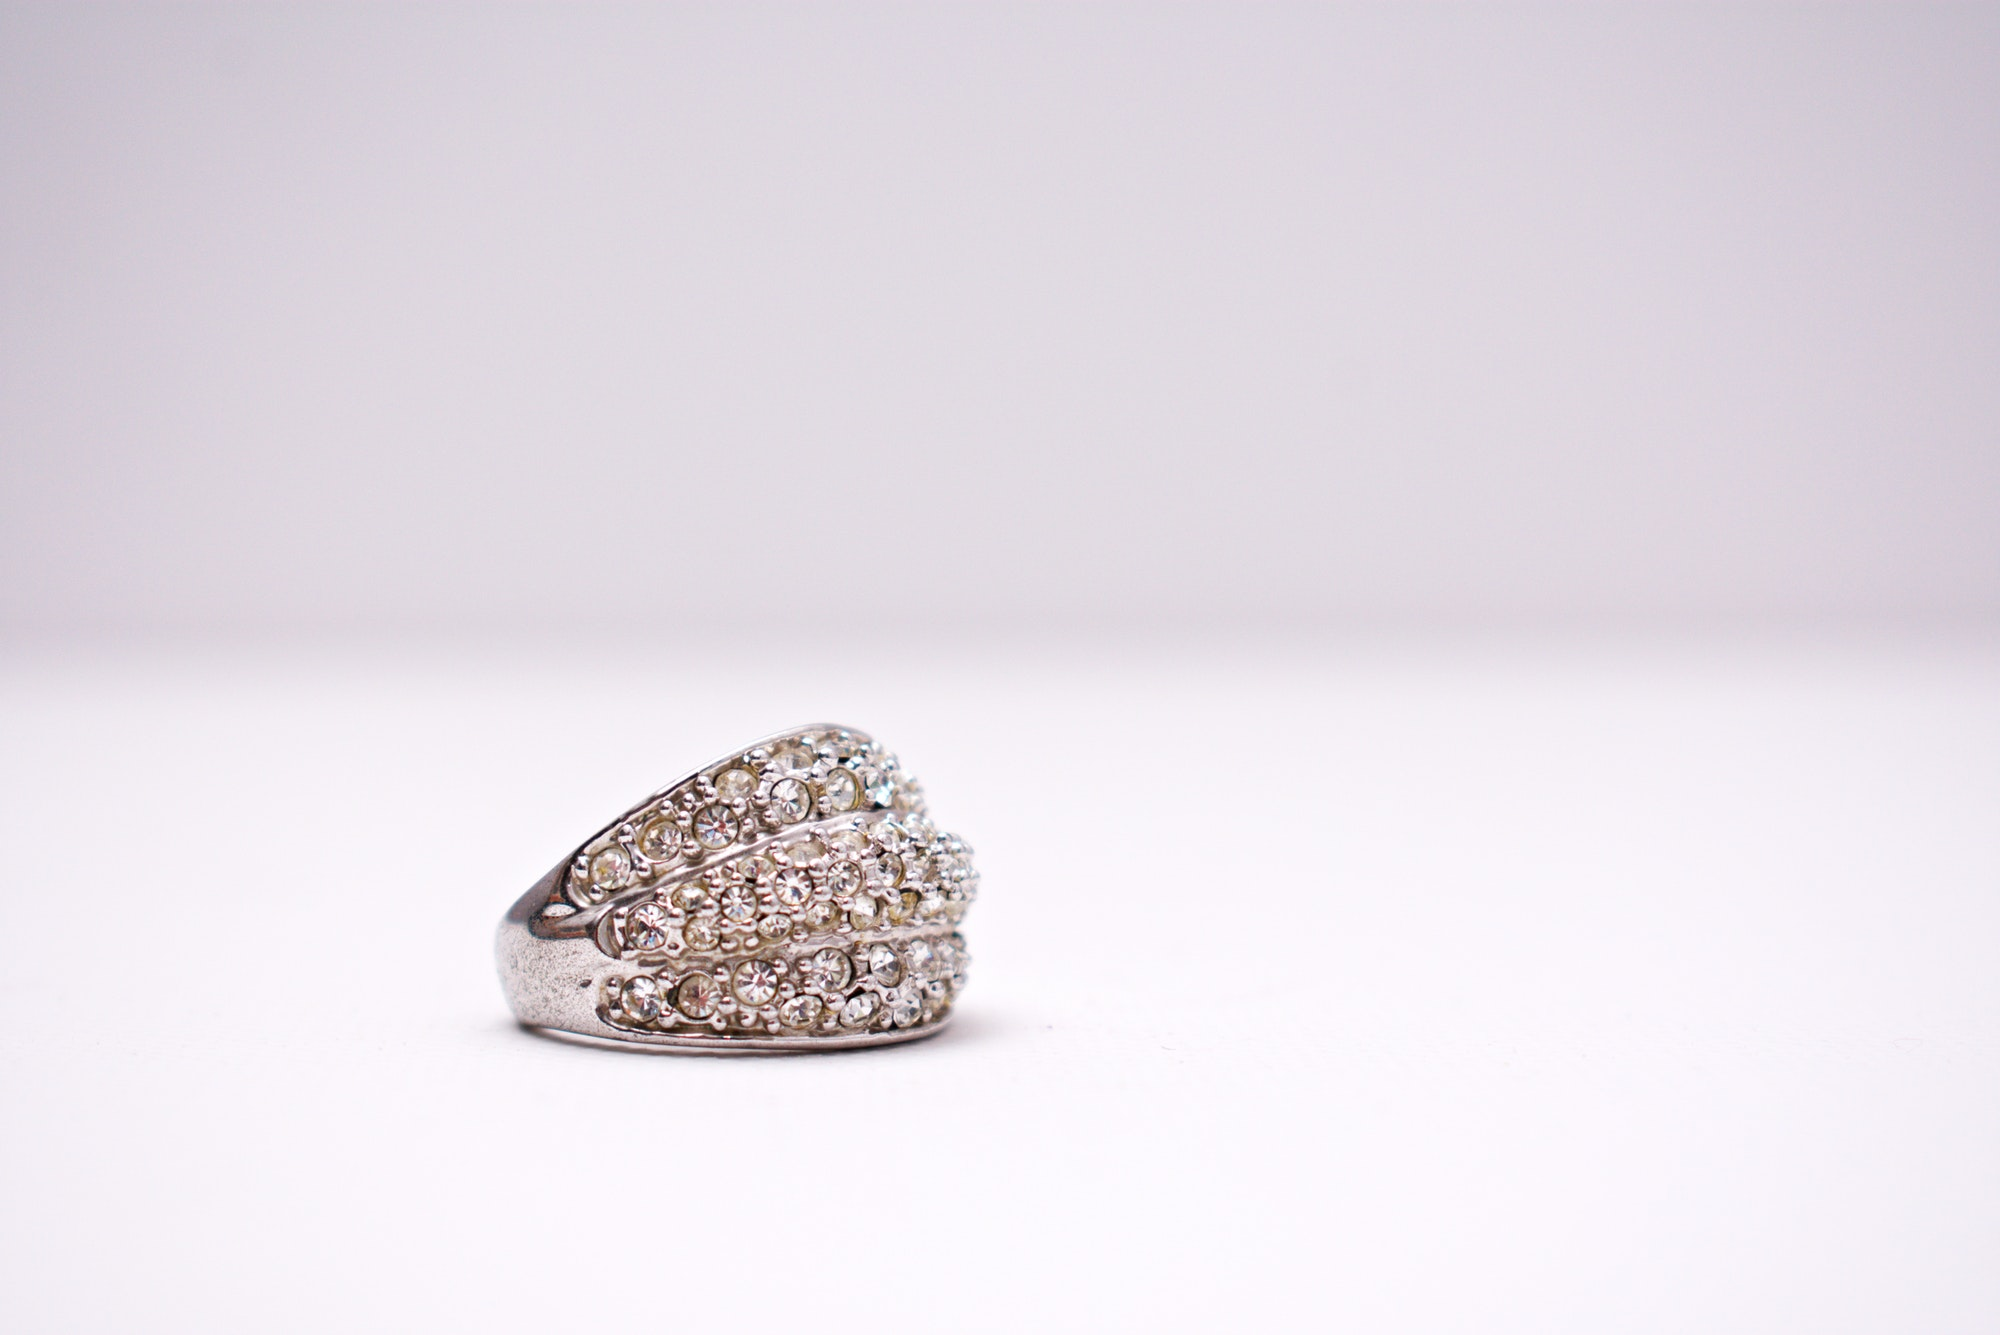 design-diamonds-jewellery-1302307.jpg